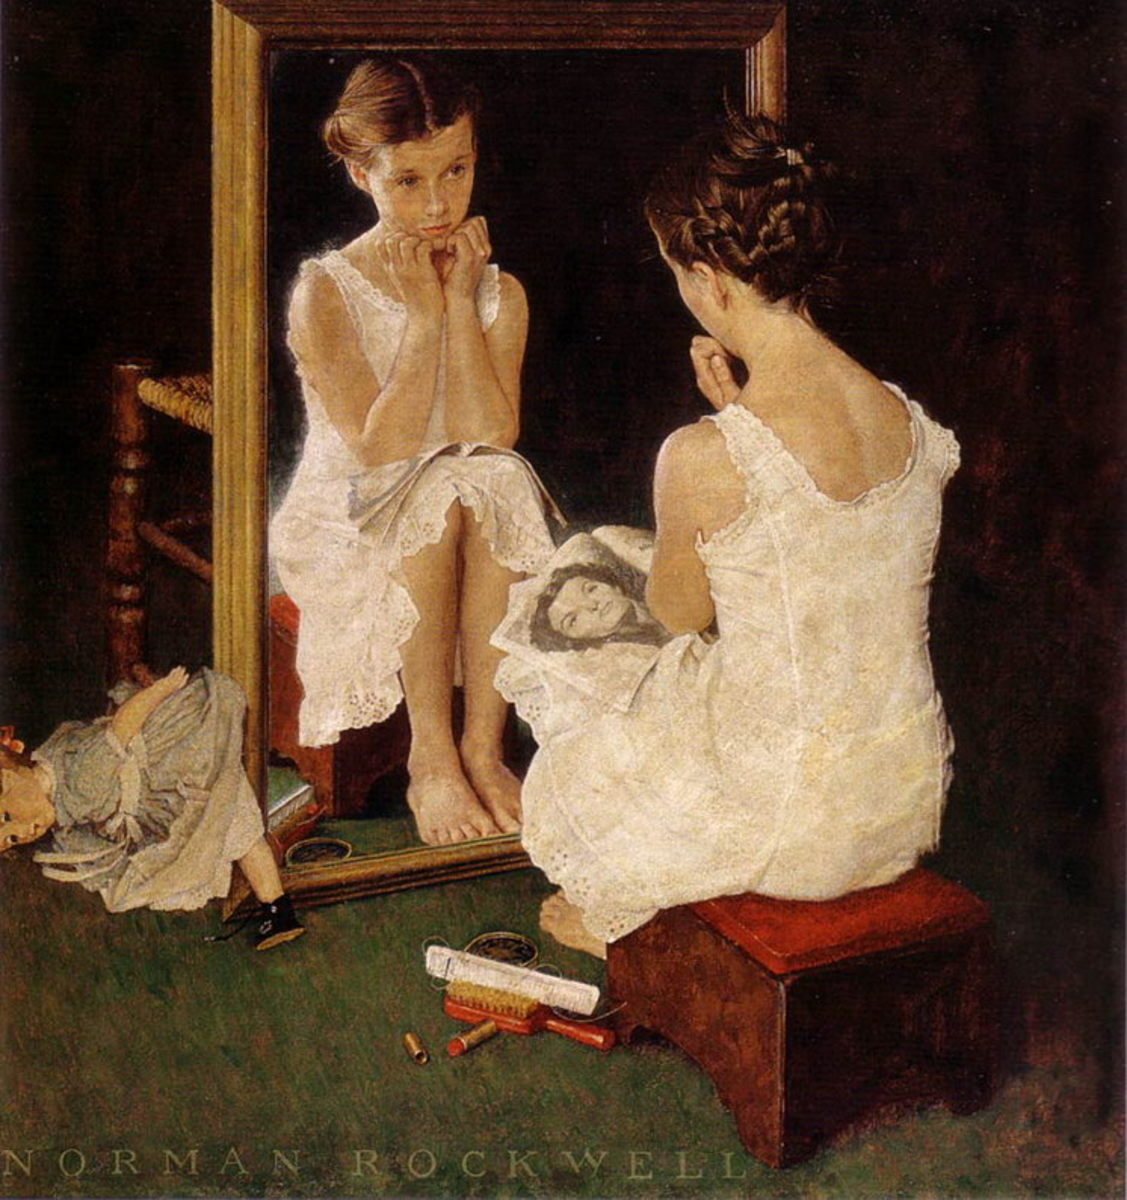 Norman Rockwell's Mirror